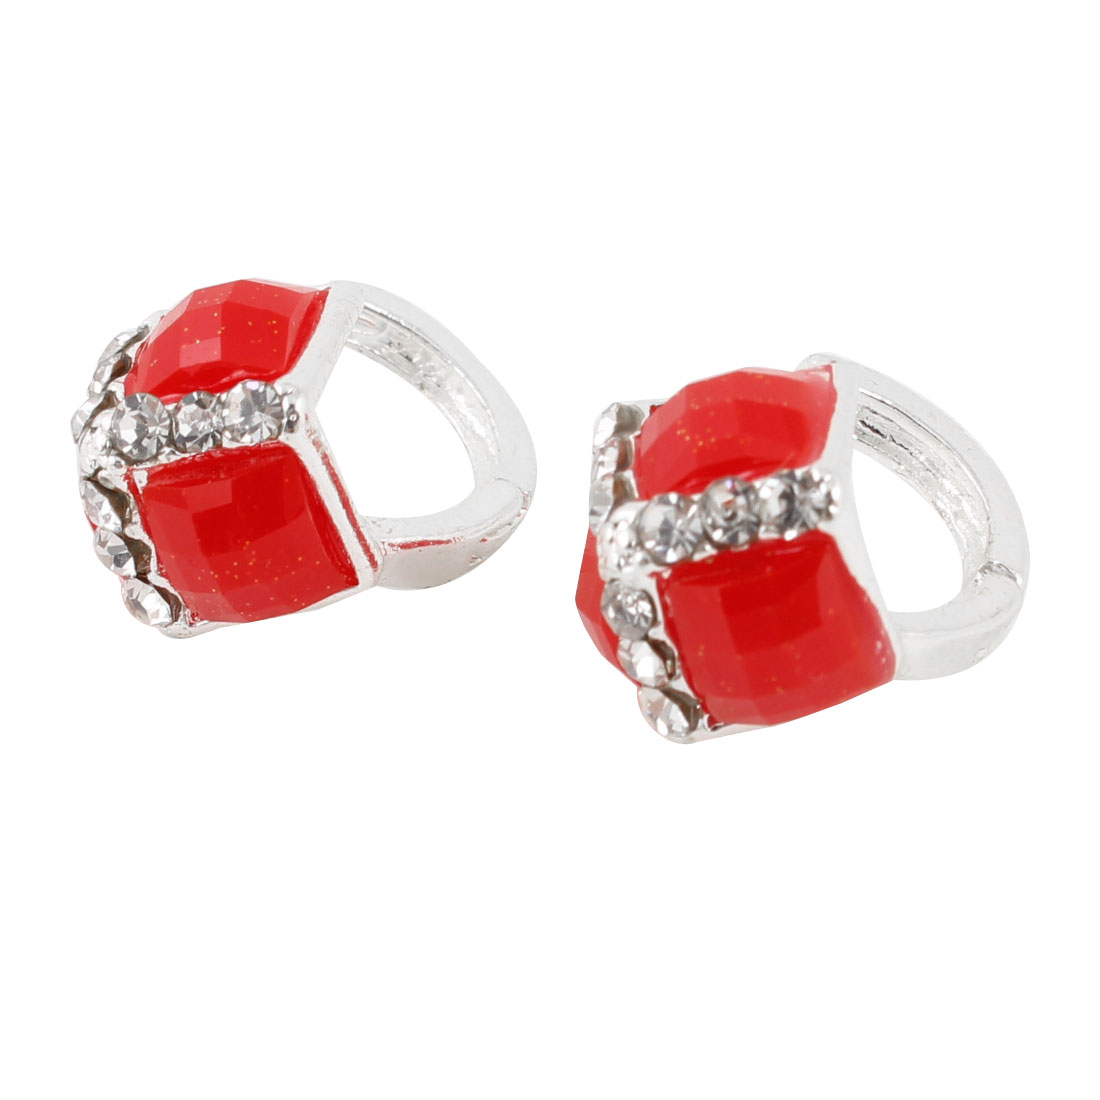 Ladies Pair Rhinestone Decor Pierced Hoop Earrings Red Silver Tone